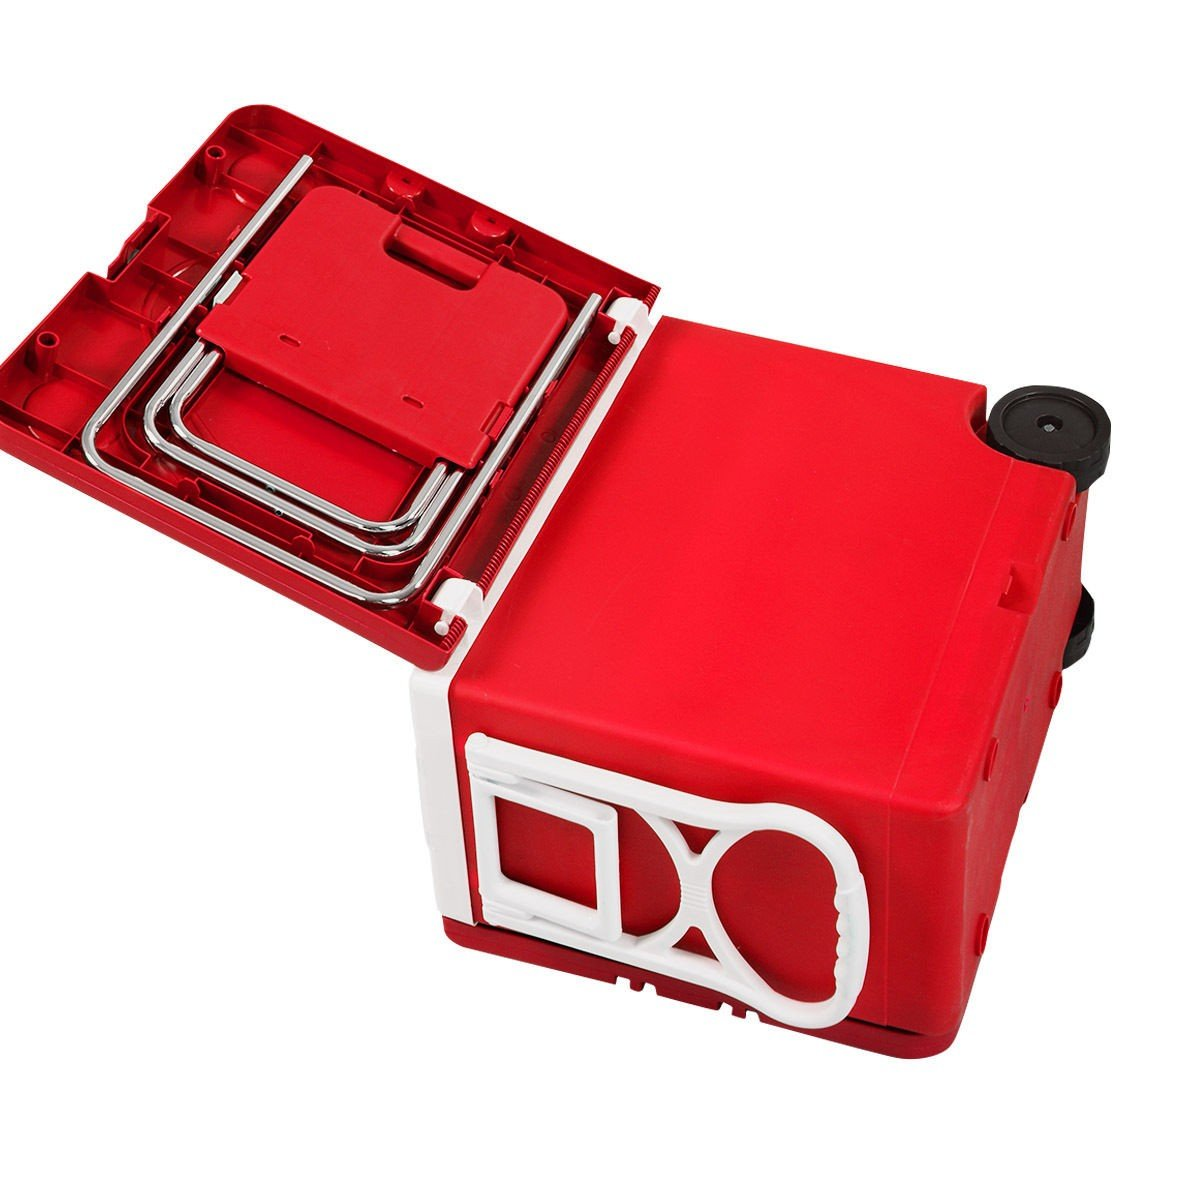 CHOOSEandBUY Multi Functional Rolling Picnic Cooler w/Table & 2 Chairs - RED by CHOOSEandBUY (Image #6)